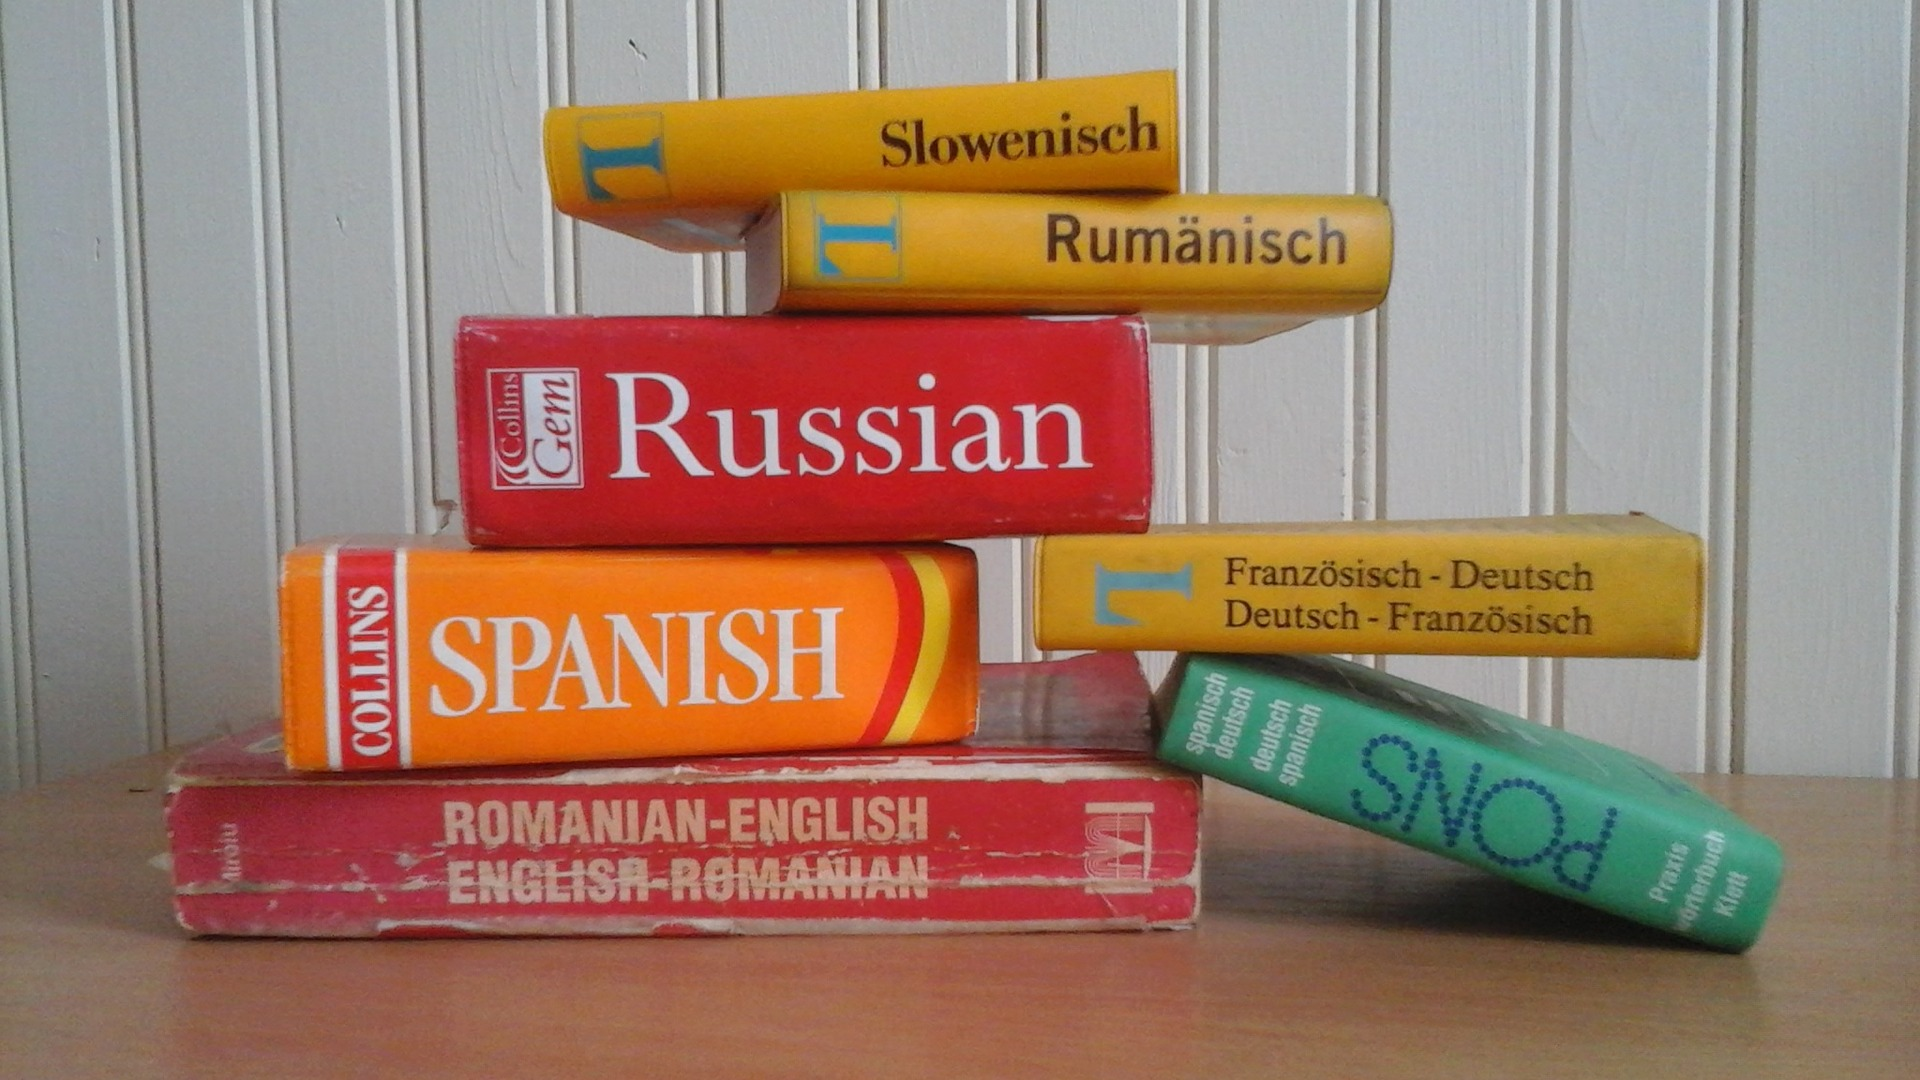 Enuncia Global provides the most cost effective and widest range of Book Translation Language Services language pairs